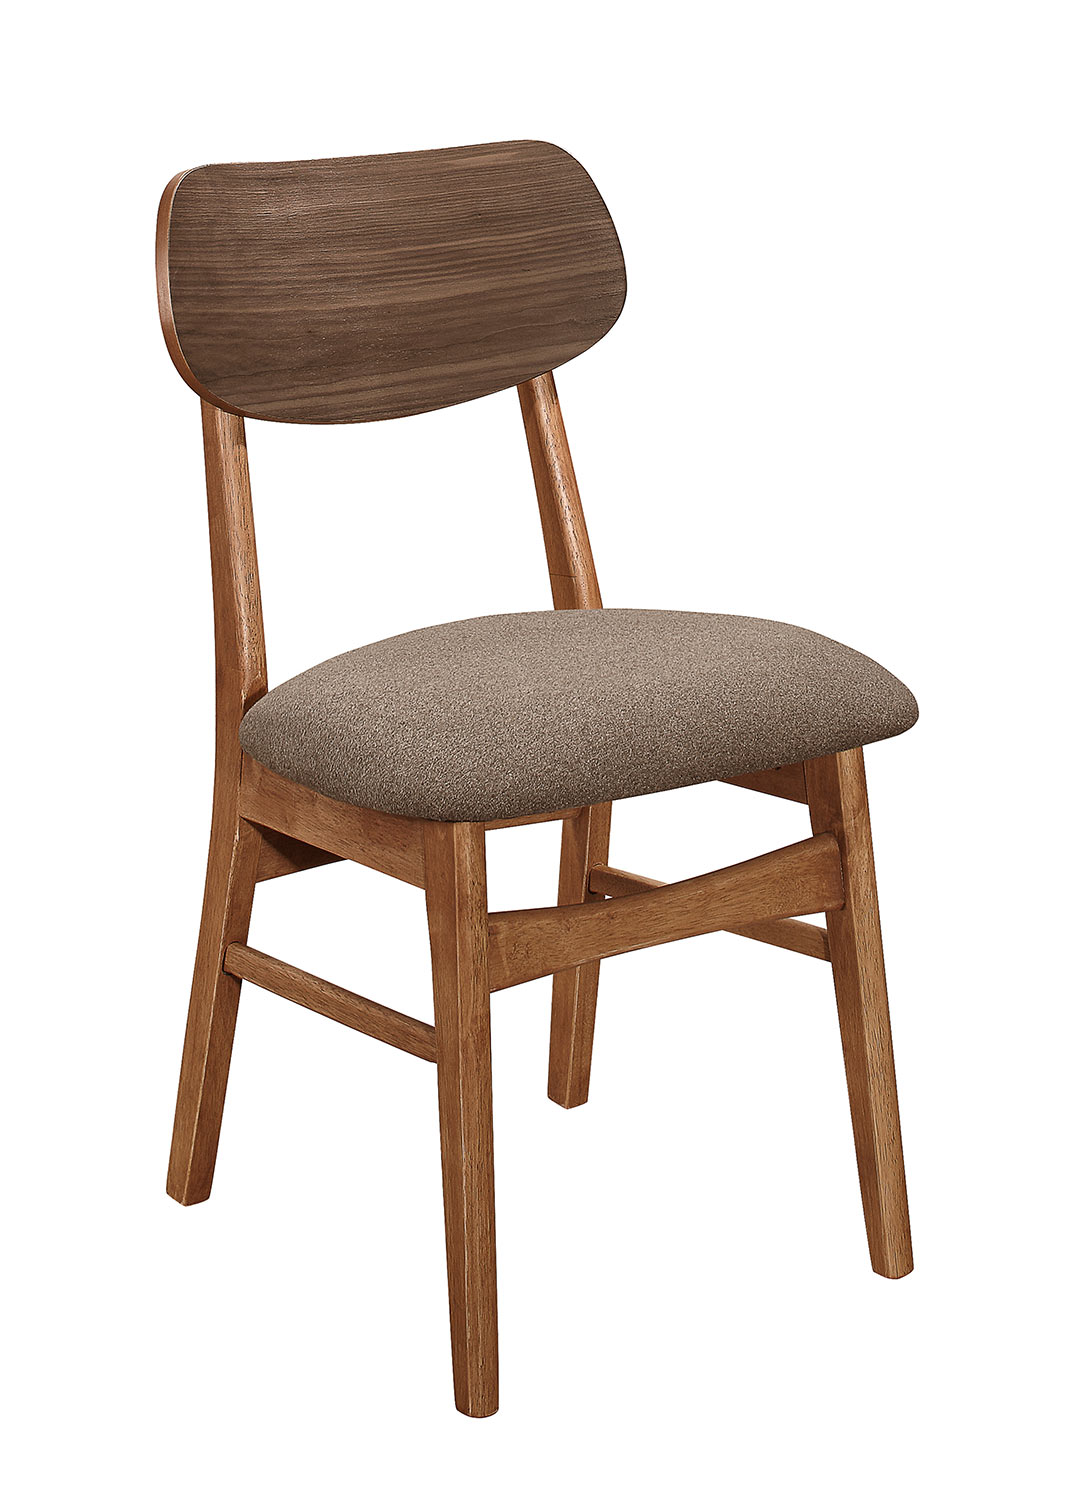 Homelegance Paran Side Chair - Natural Walnut